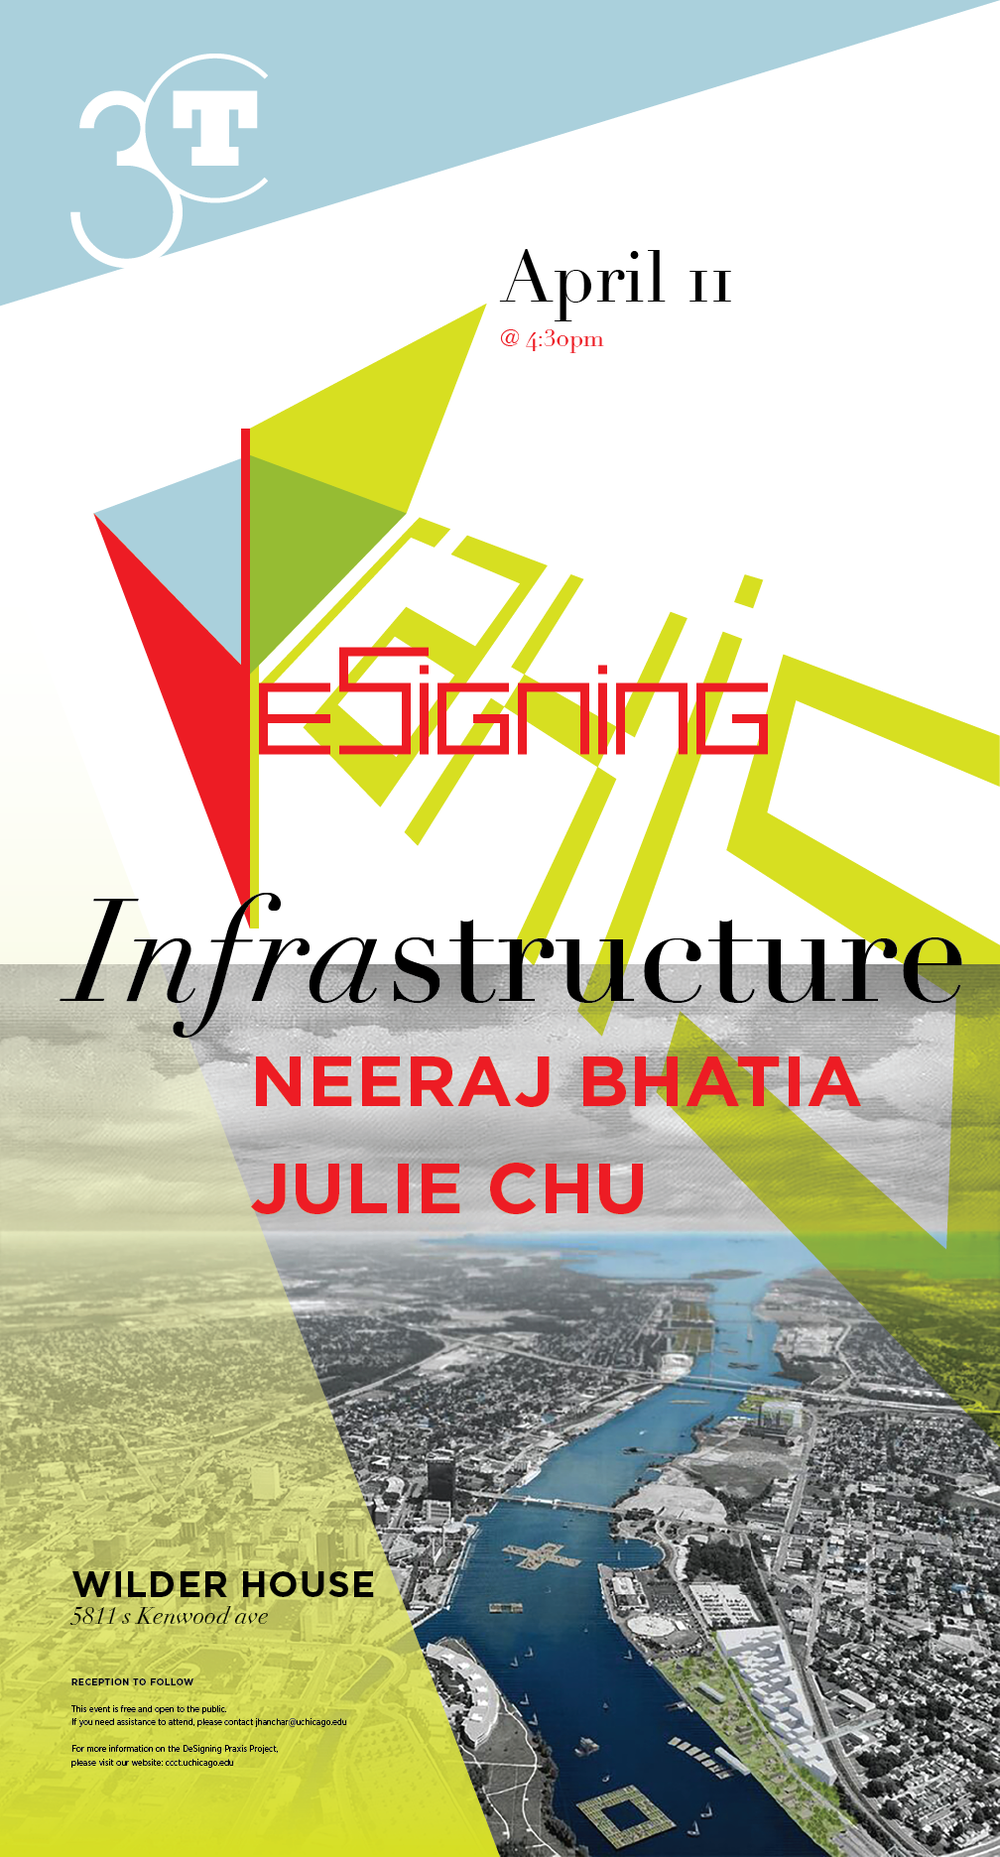 Poster for DeSigning Infrastructure event with Neeraj Bhatia and Julie Chu